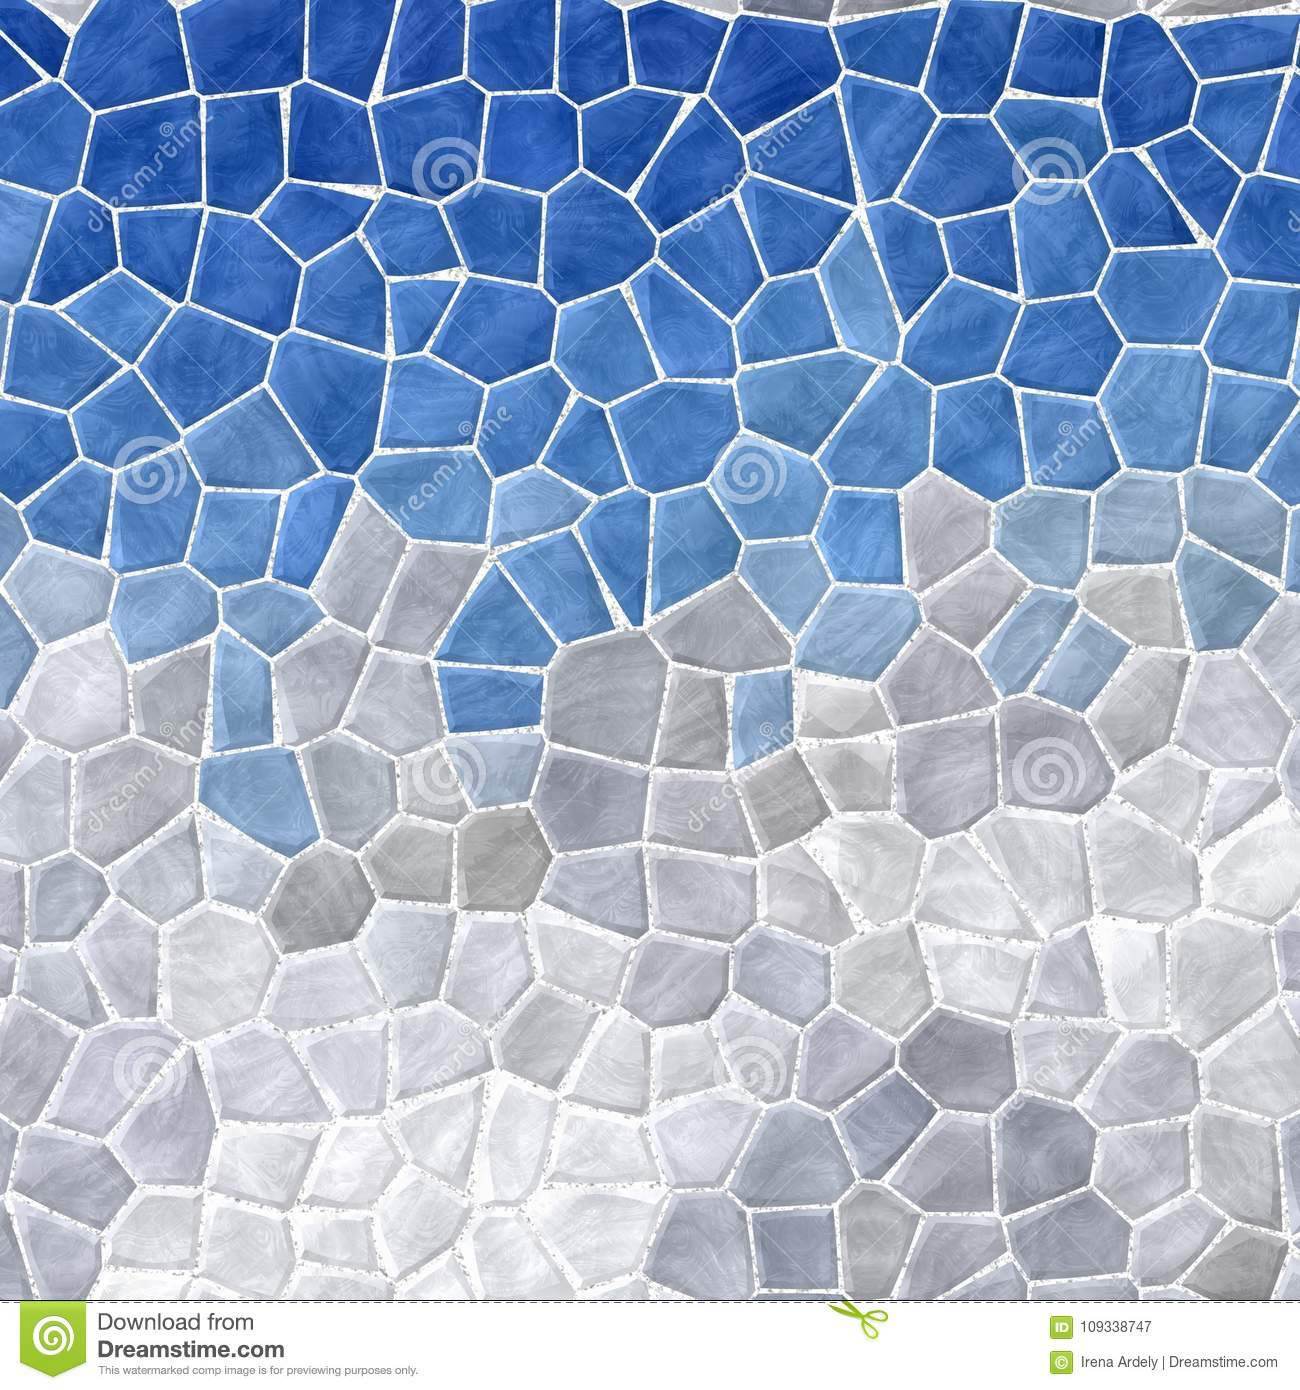 Abstract Marble Plastic Stony Mosaic Tiles Texture Background With